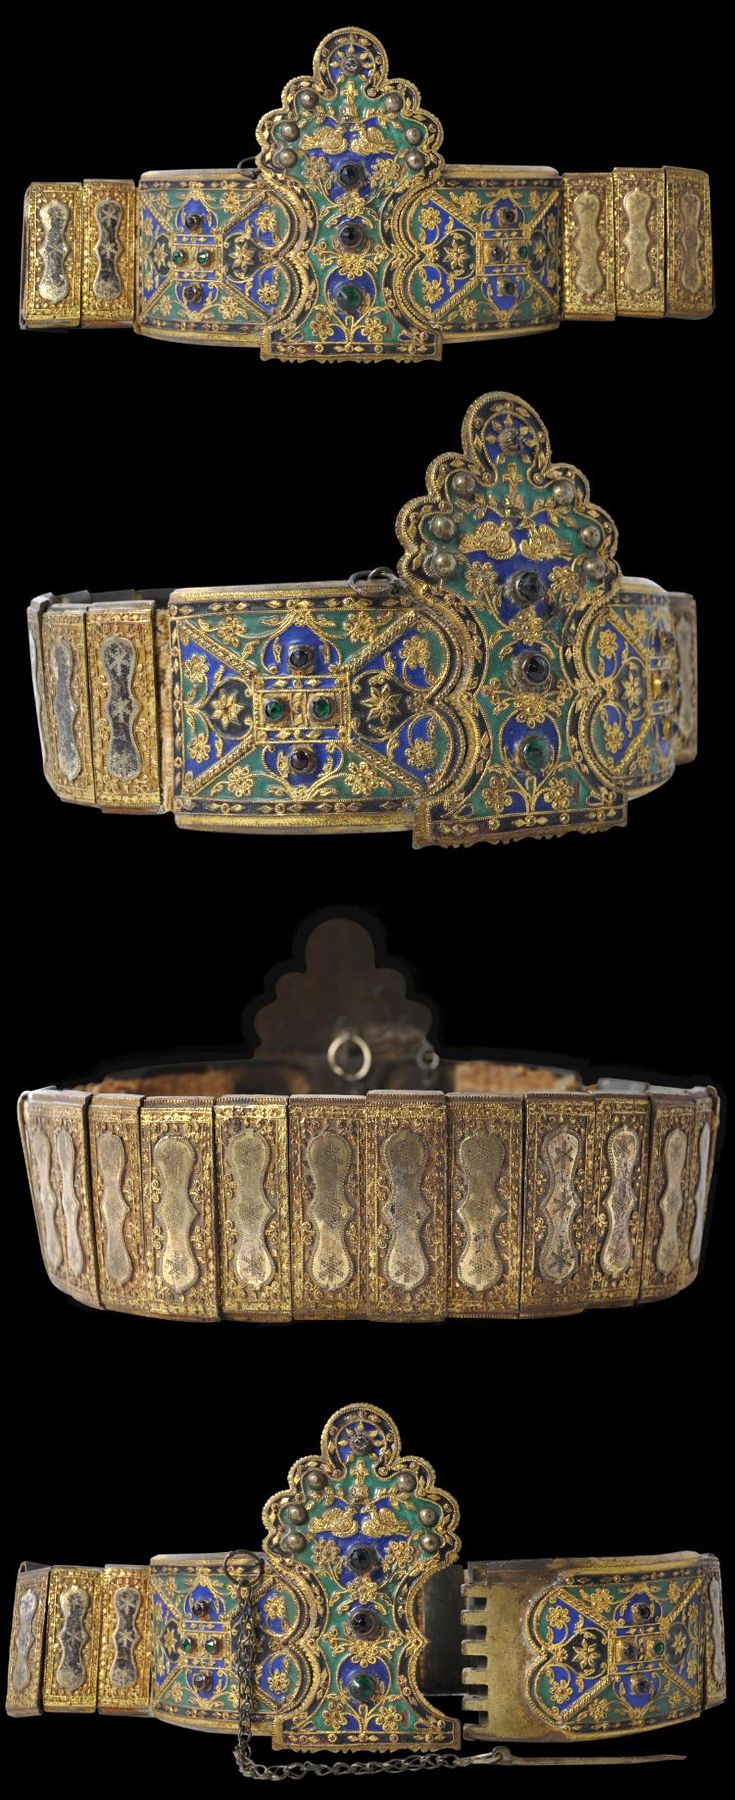 Greece / Thrace | Enamelled and gilded wedding belt, made for a groom to present to his bride | Gilded nickel, gilded silver, enamel and glass paste stones. The metal plates of the belt are attached to woven fabric | 19th century | POR